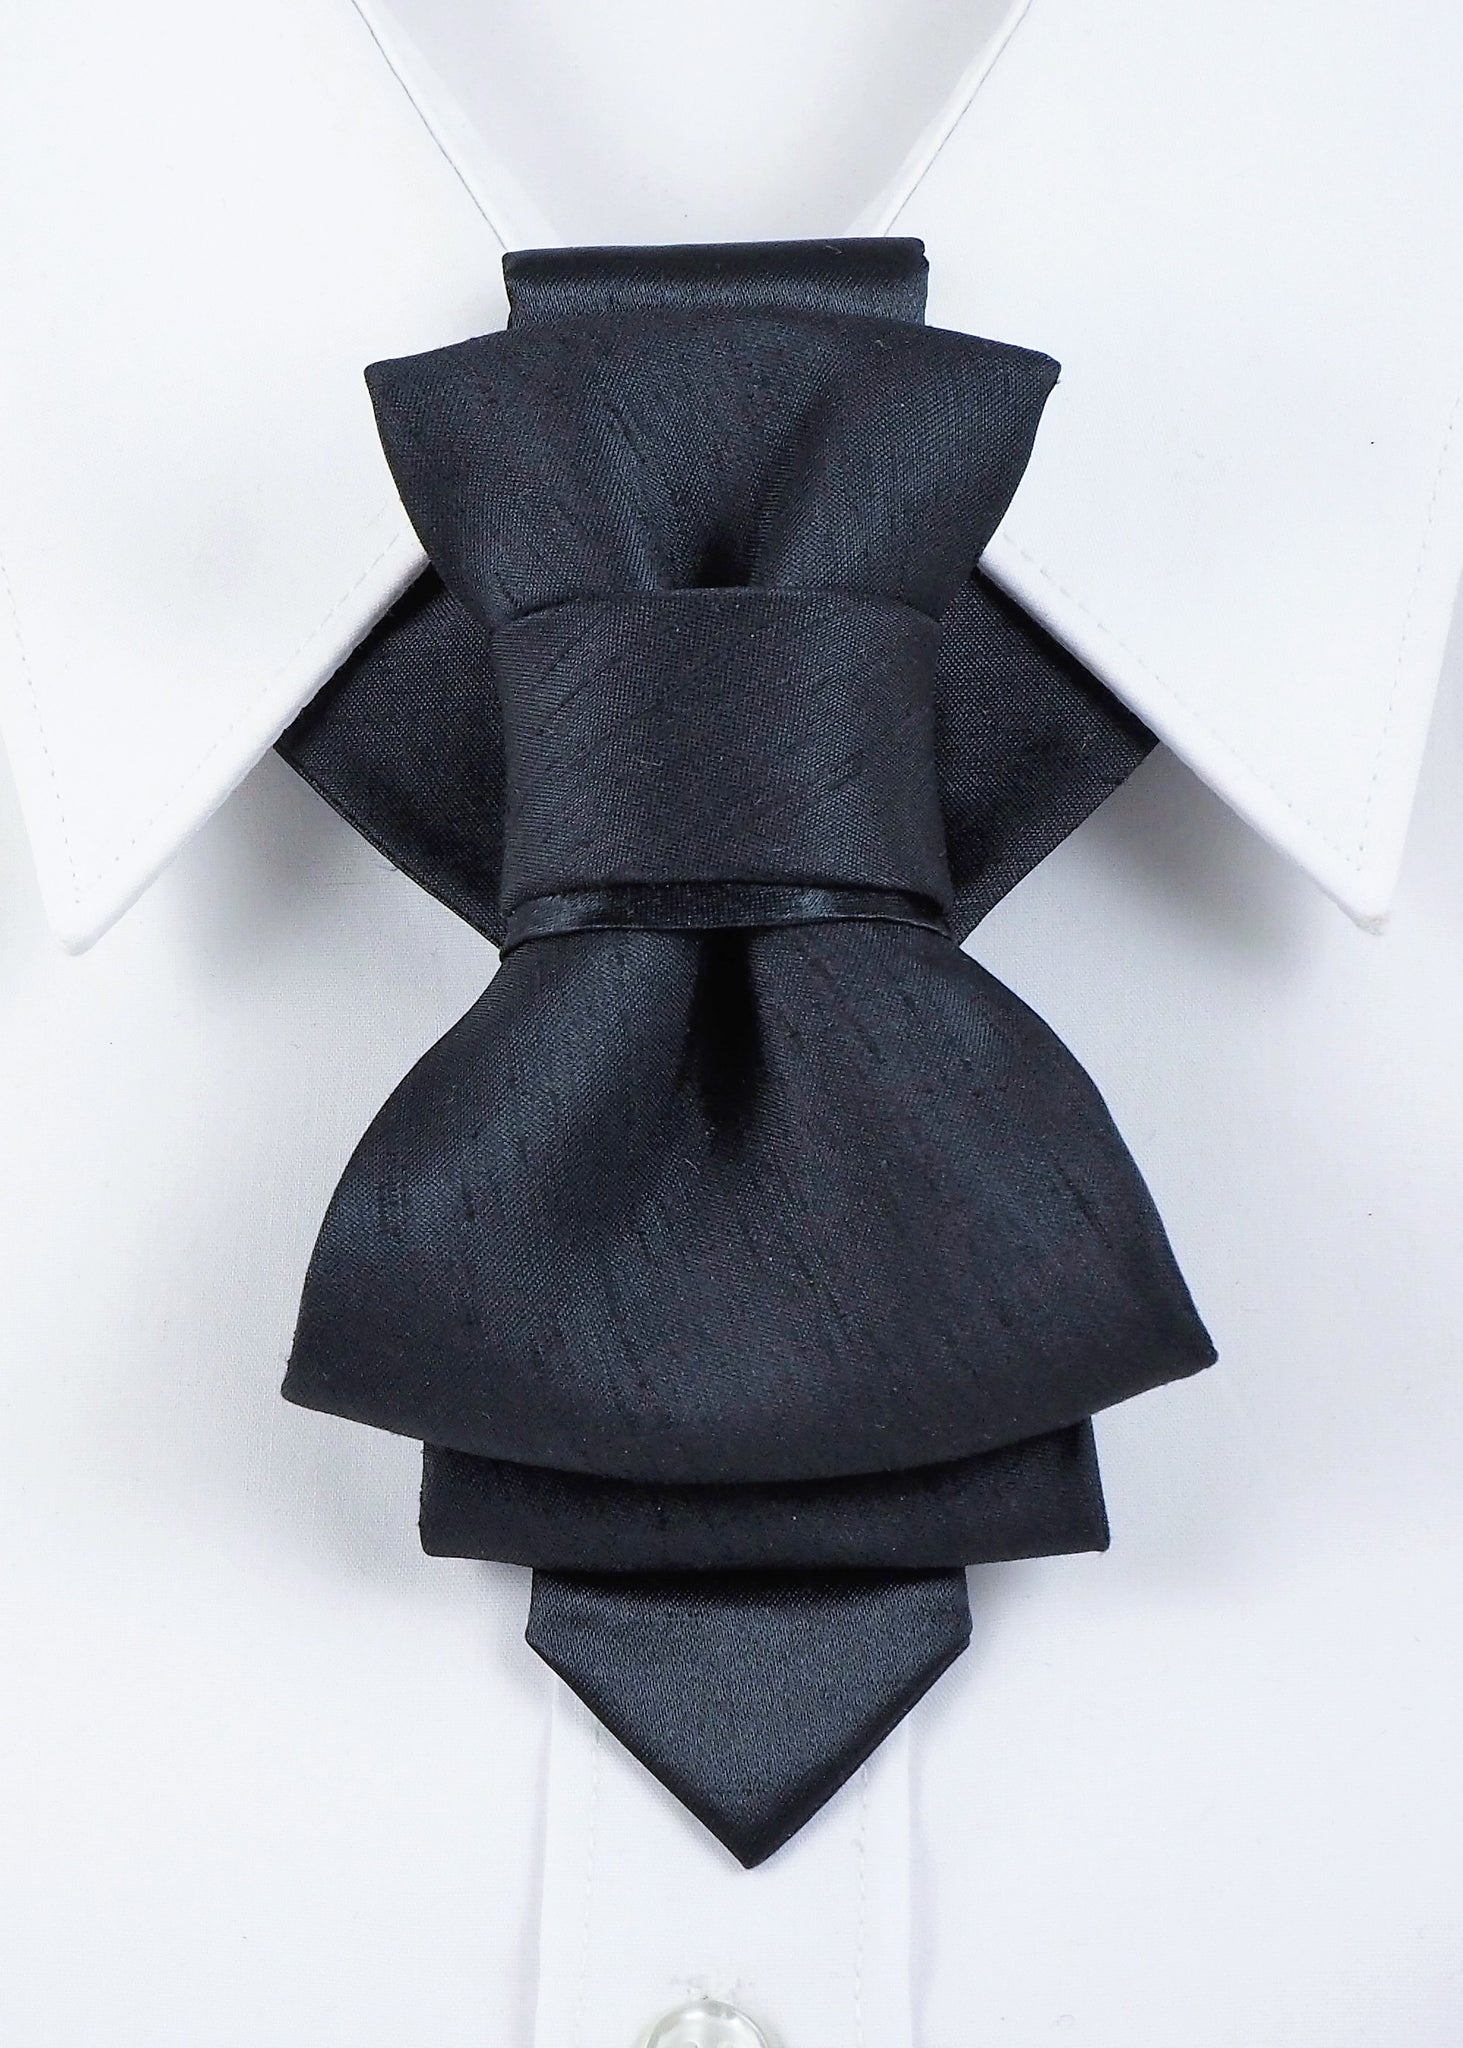 Bow Tie, Tie for wedding suite GRAPHITE hopper tie Bow tie, Vilnius bow tie, Lithuania tie